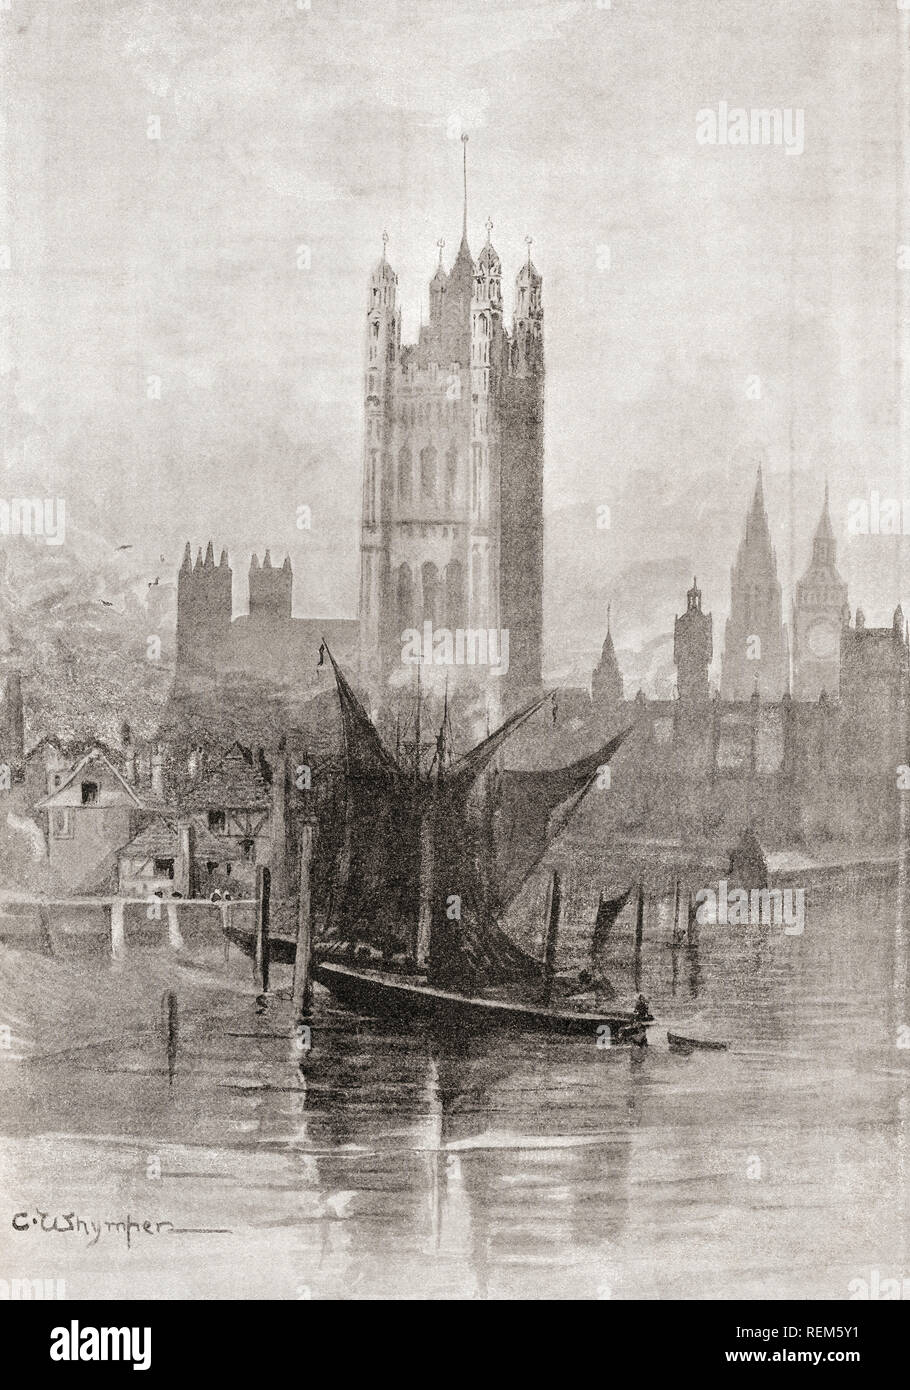 The New Palace of Westminster, City of Westminster, London, England, seen here after its reconstruction following the fire of 1834 which virtually destroyed the old palace.  From London Pictures, published 1890 - Stock Image